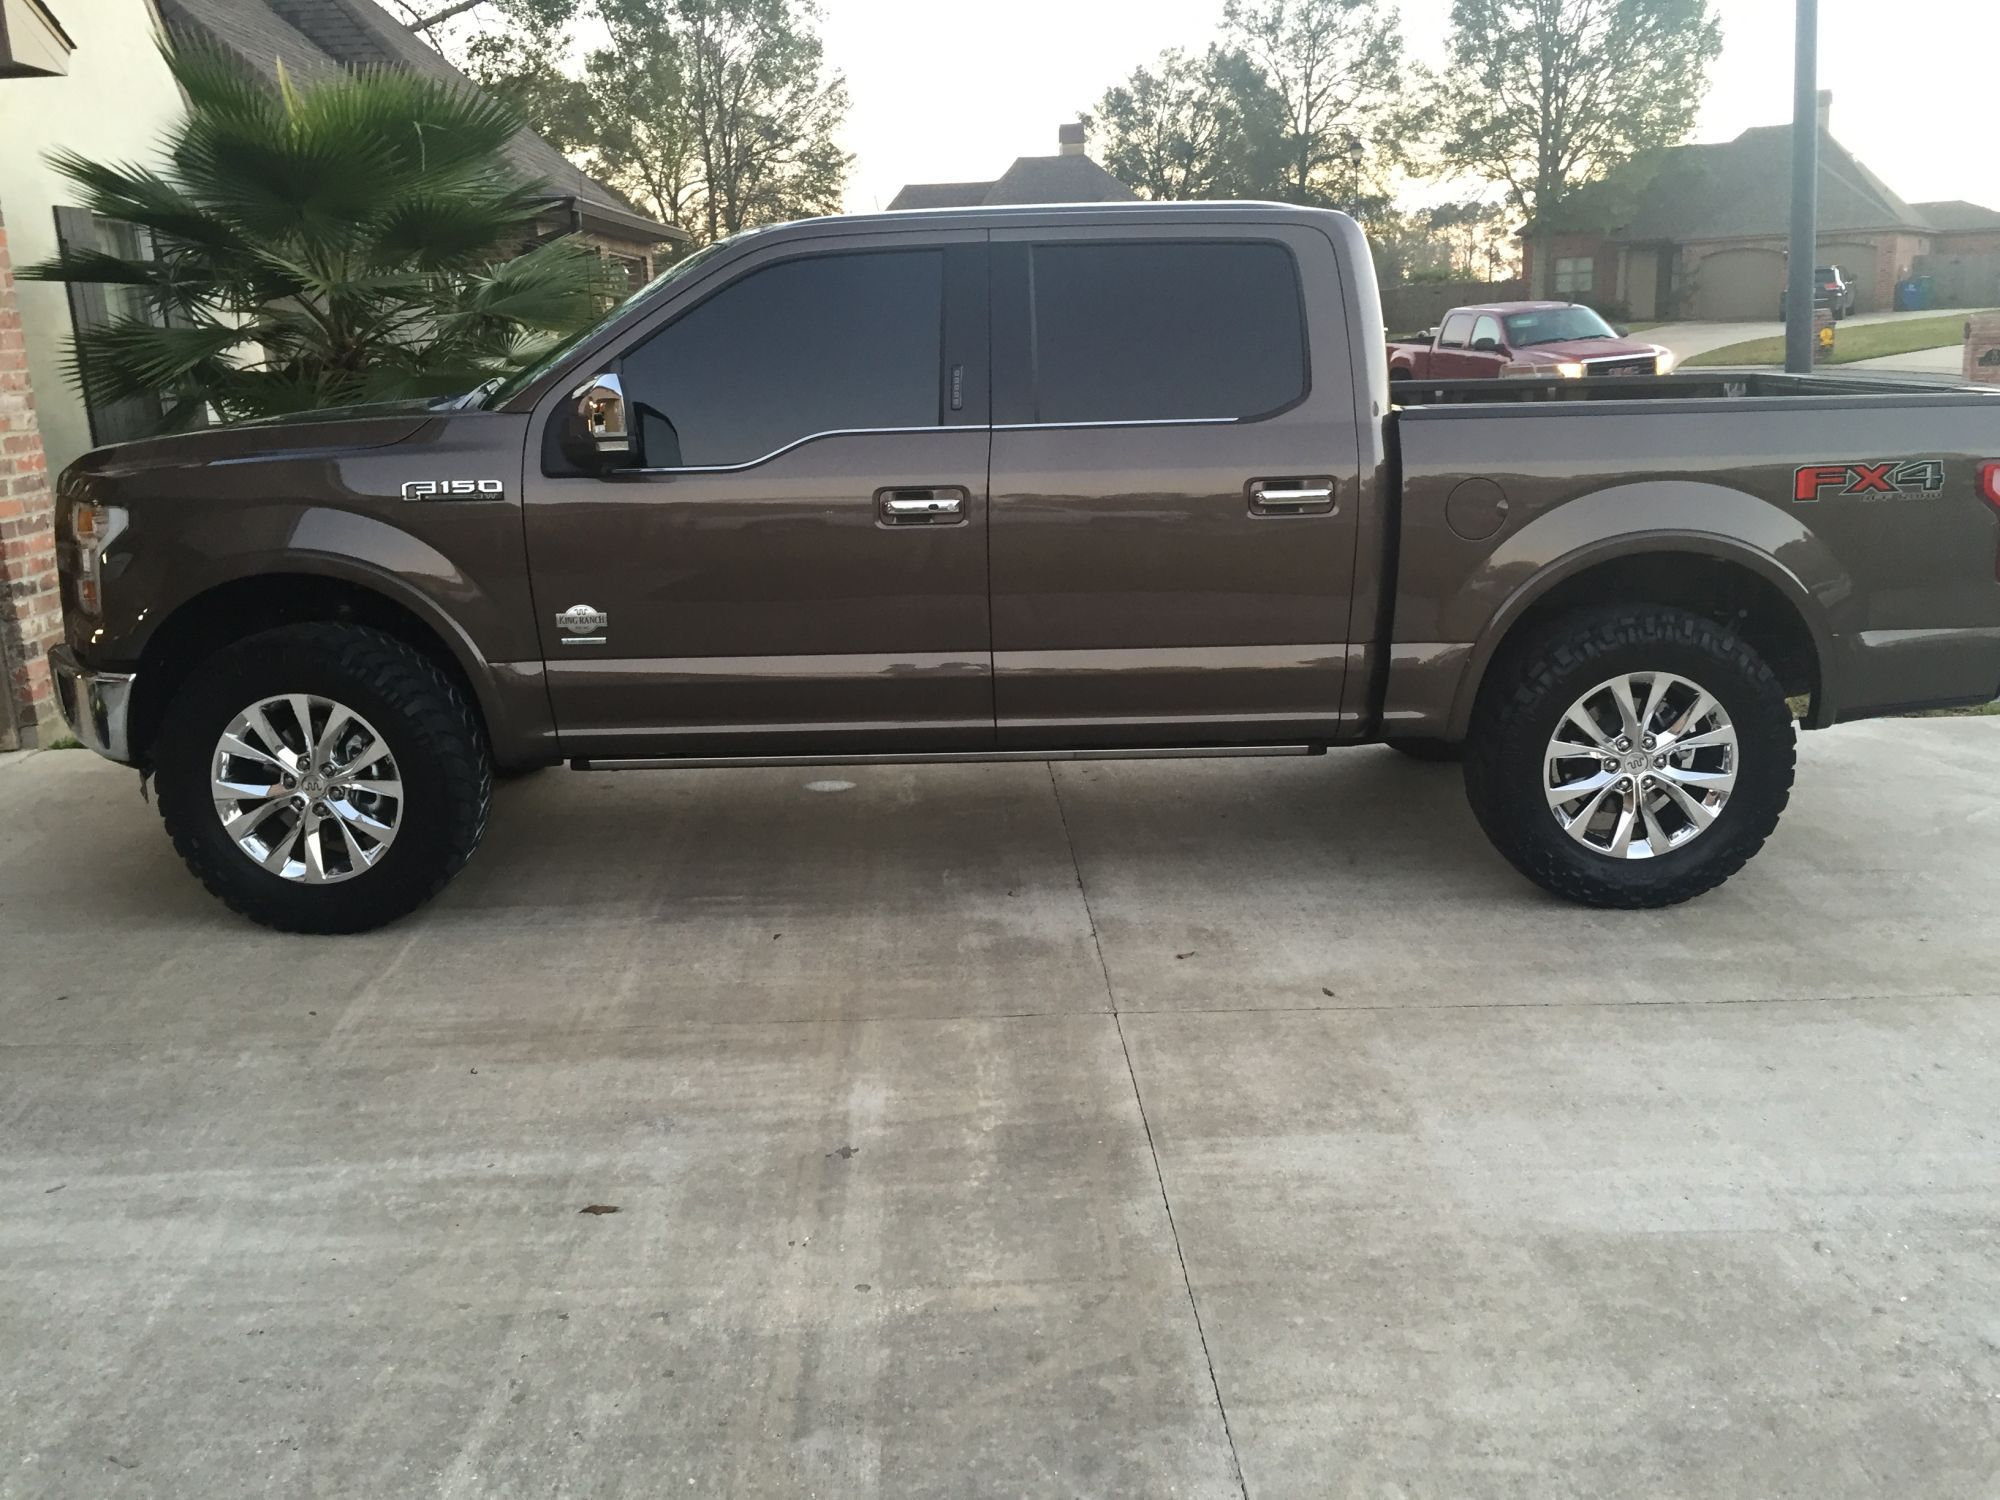 My 2 5 leveled w 35s king ranch page 5 ford f150 forum